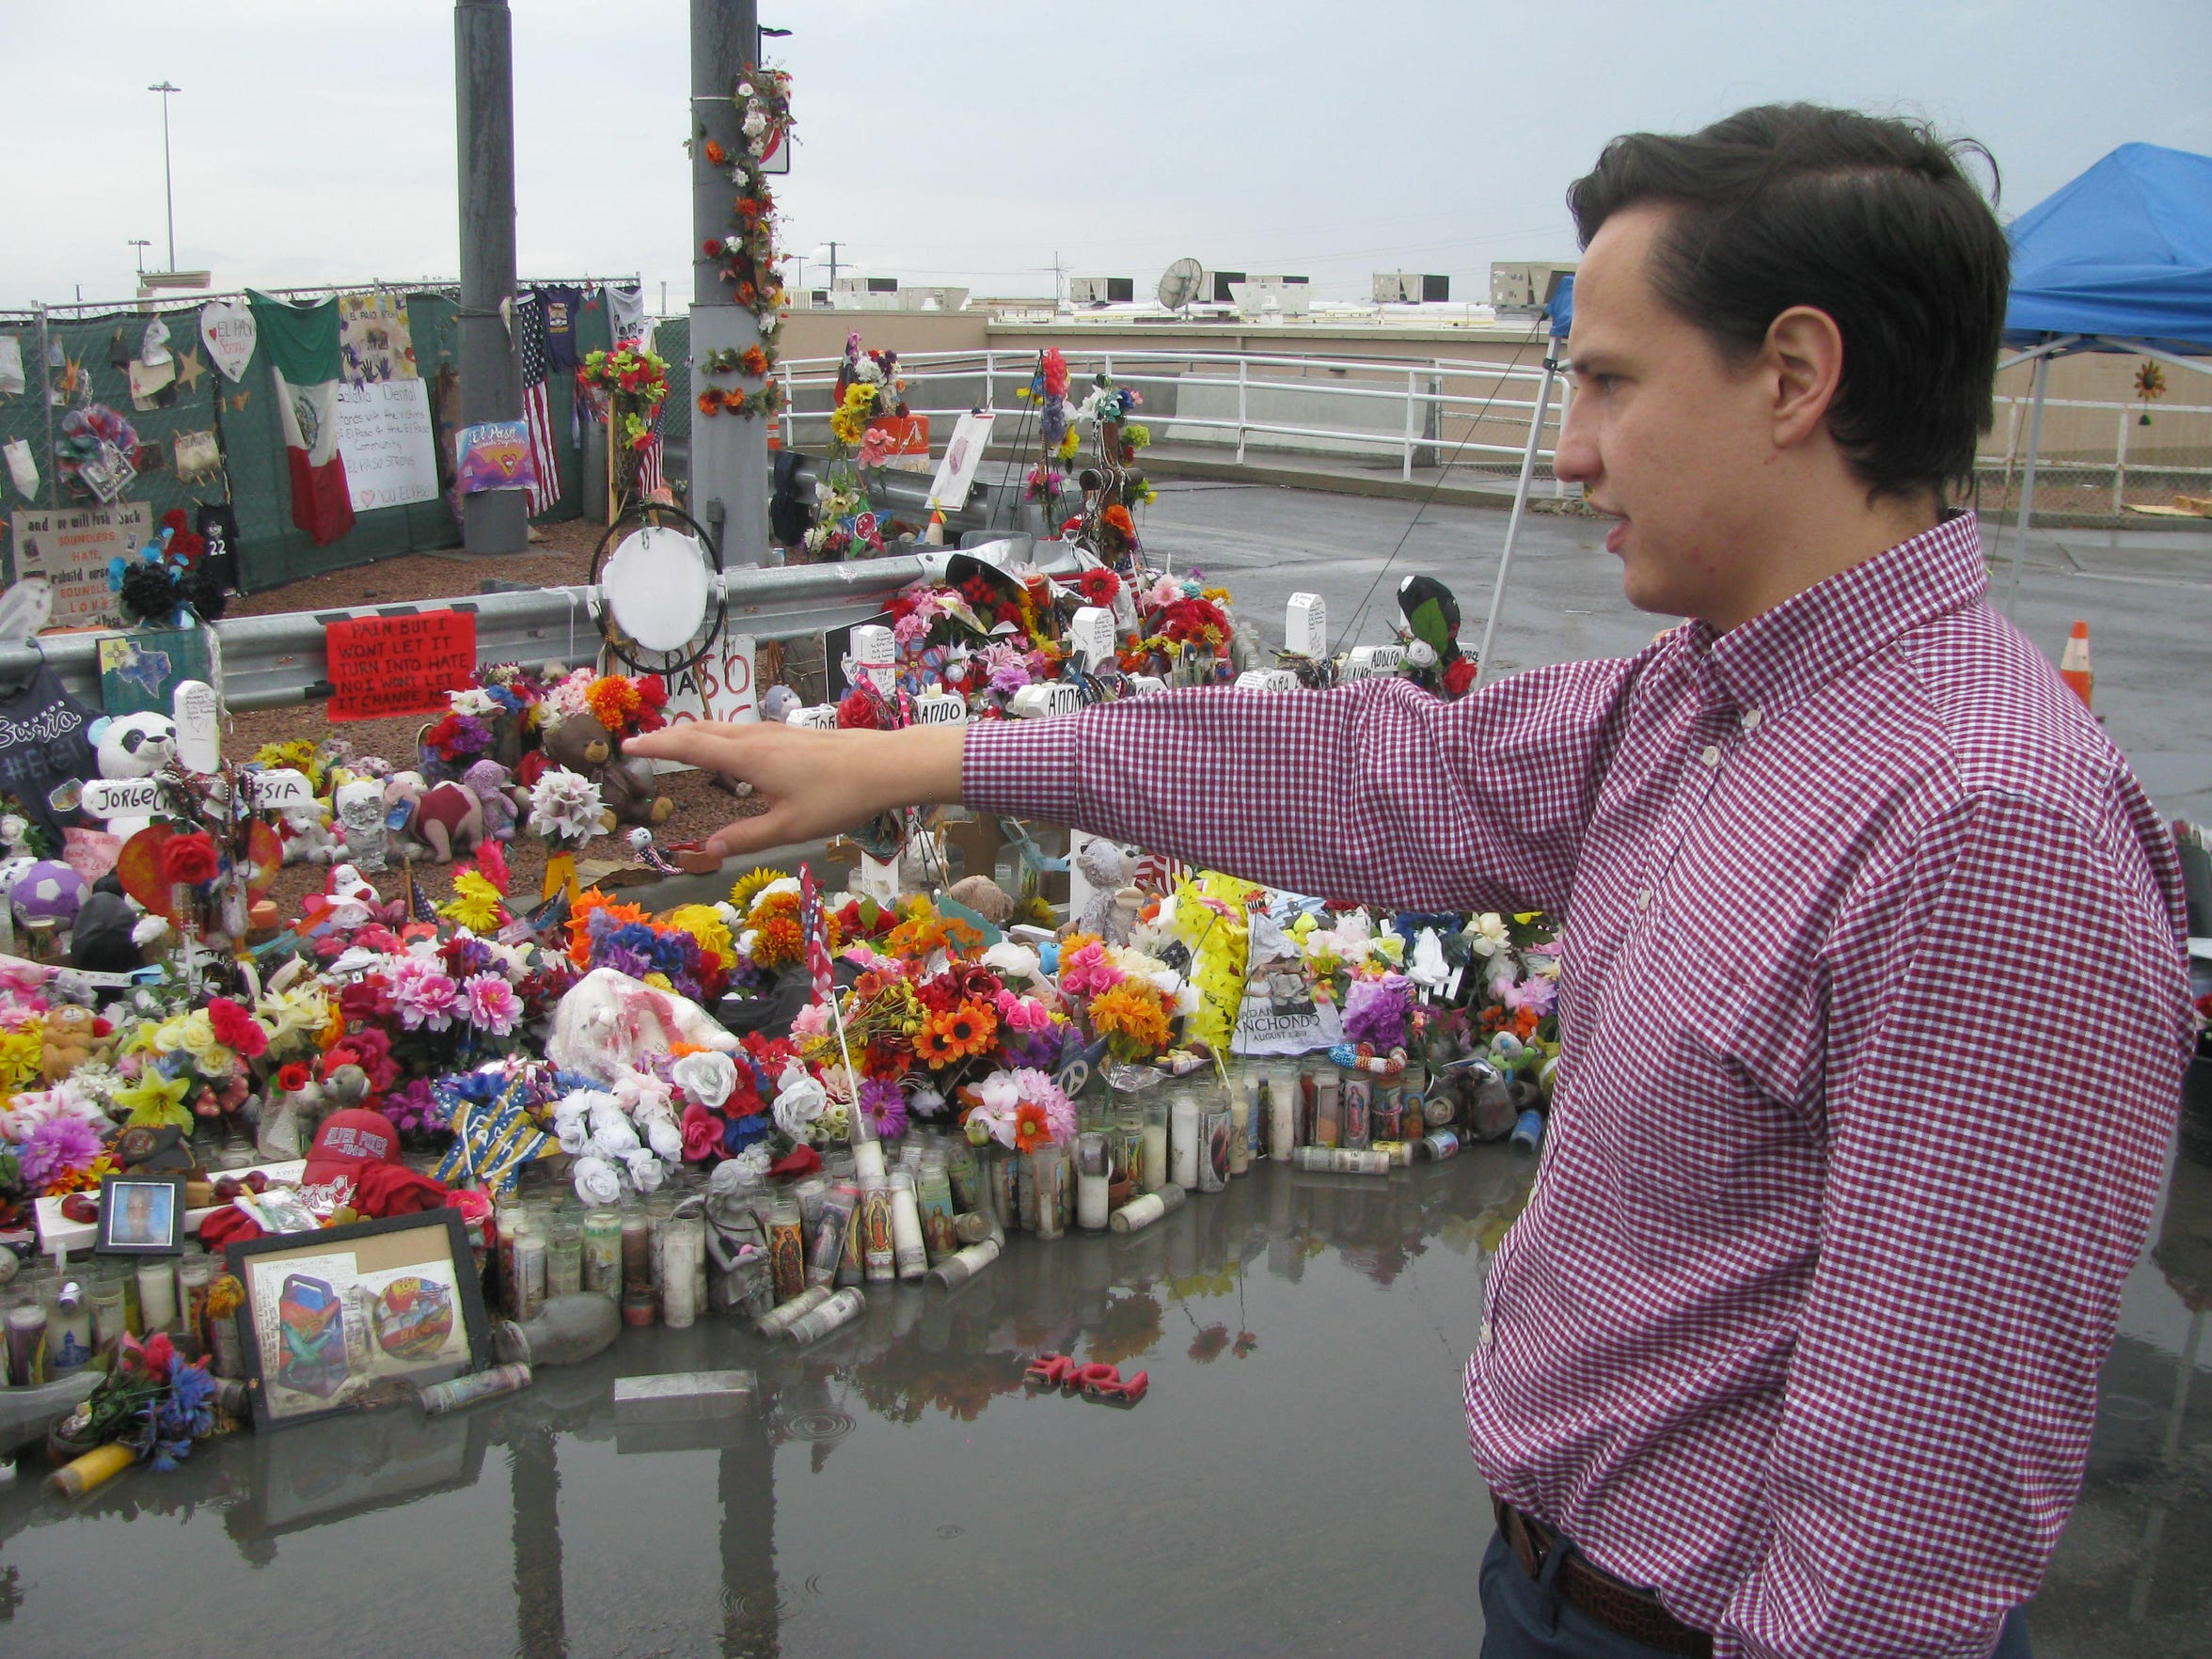 Adrian Broaddus visits the memorial behind an El Paso Walmart on Oct. 4, 2019.